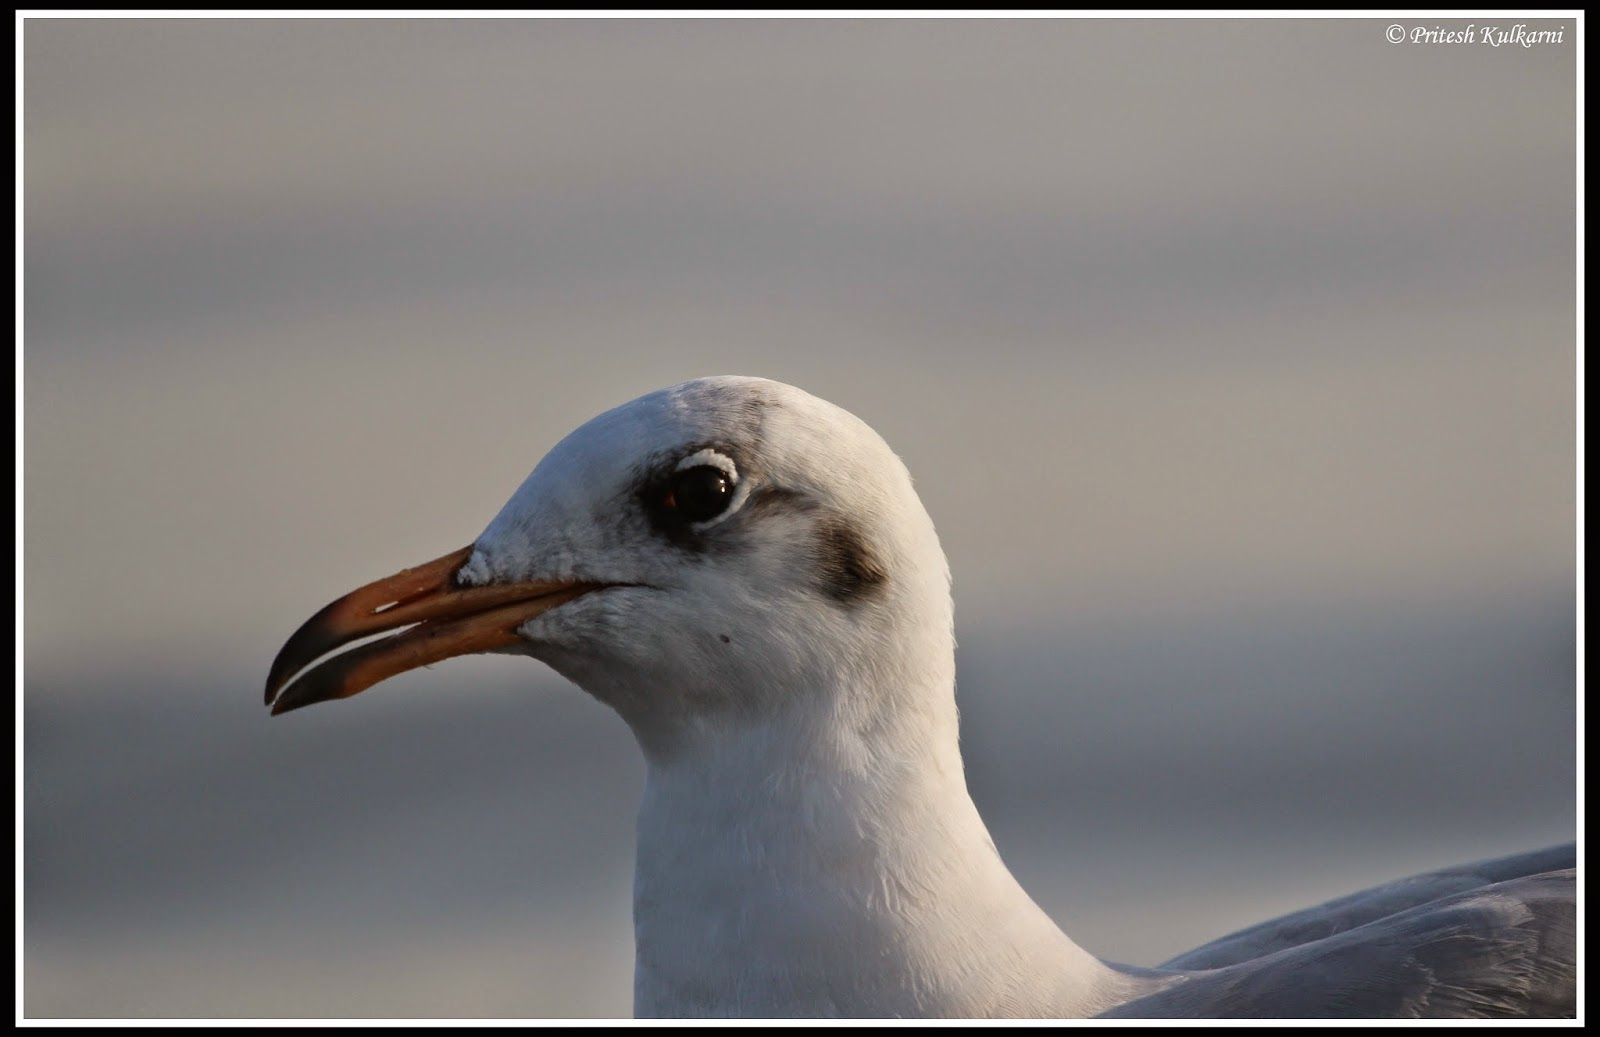 Sea gull close up